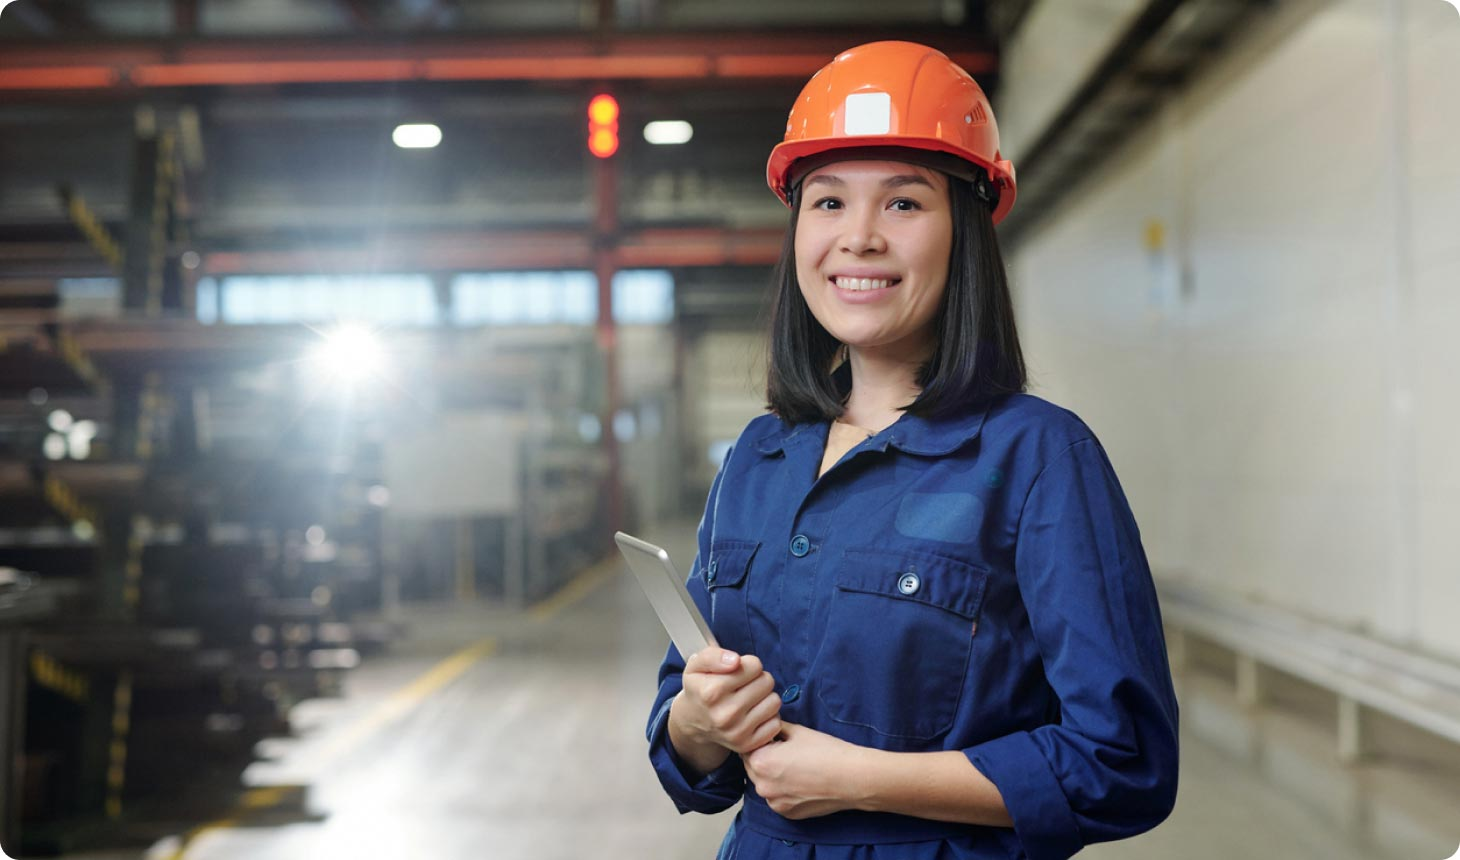 A female employee working in a warehouse holding a tablet